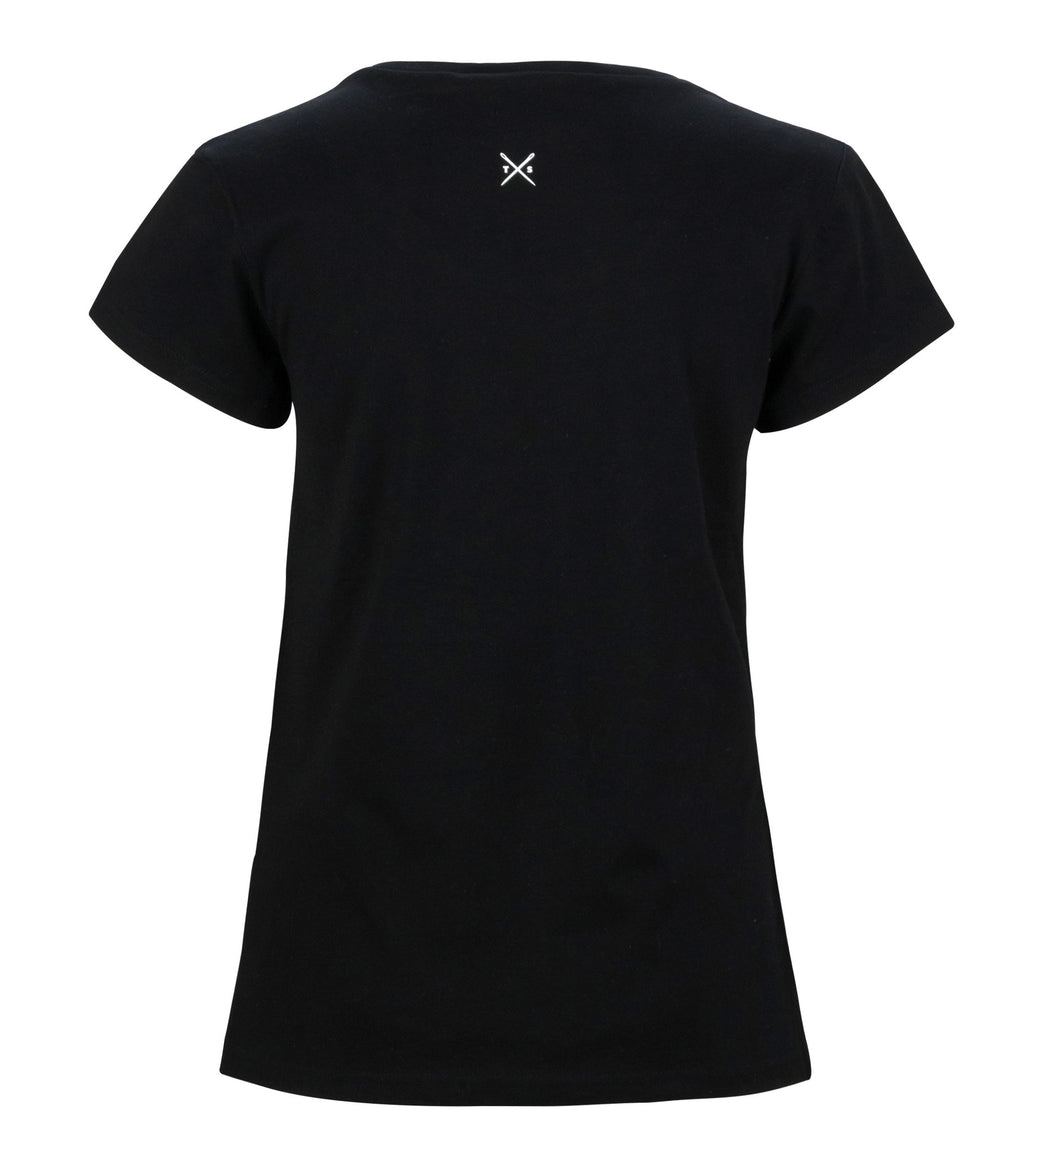 The Cavalier - Women's Black T-Shirt - Threadsmiths - 2